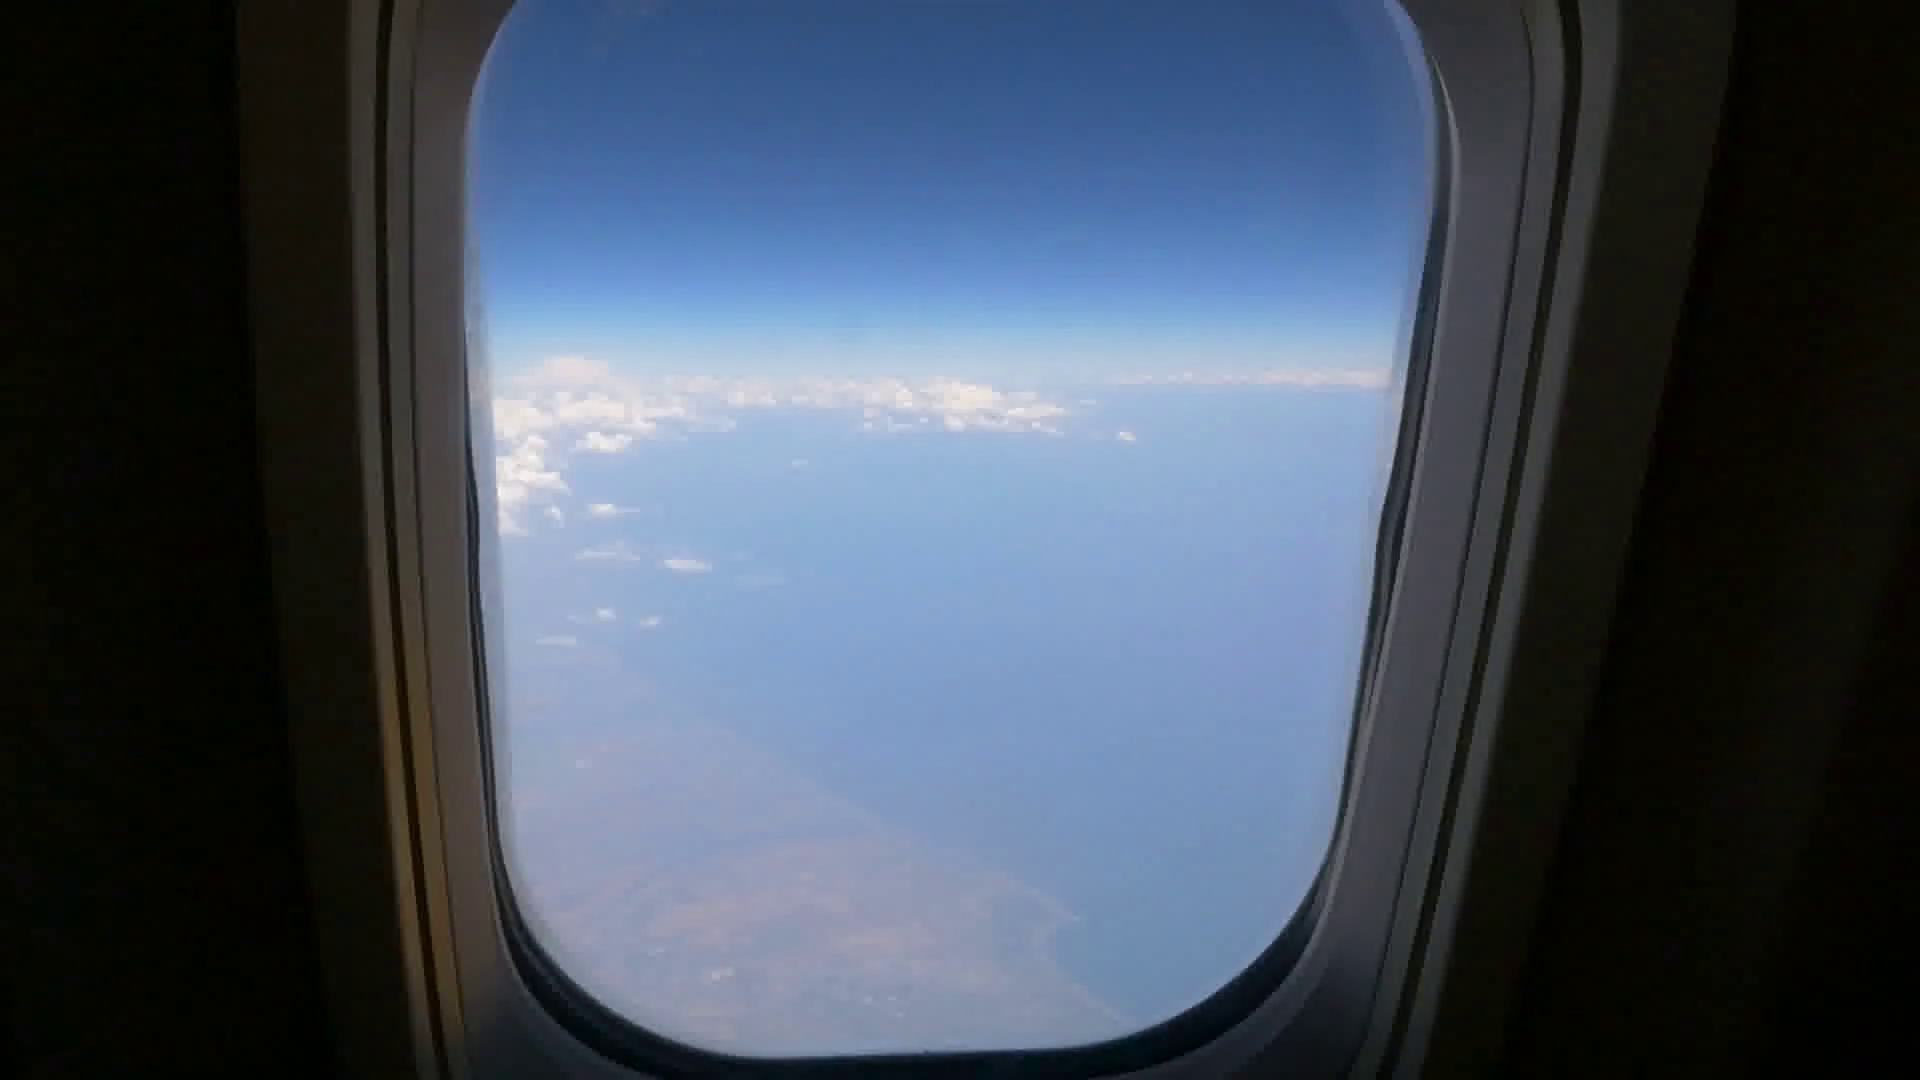 Female hand wave to goodbye from an airplane window. HD Stock Video Footage.